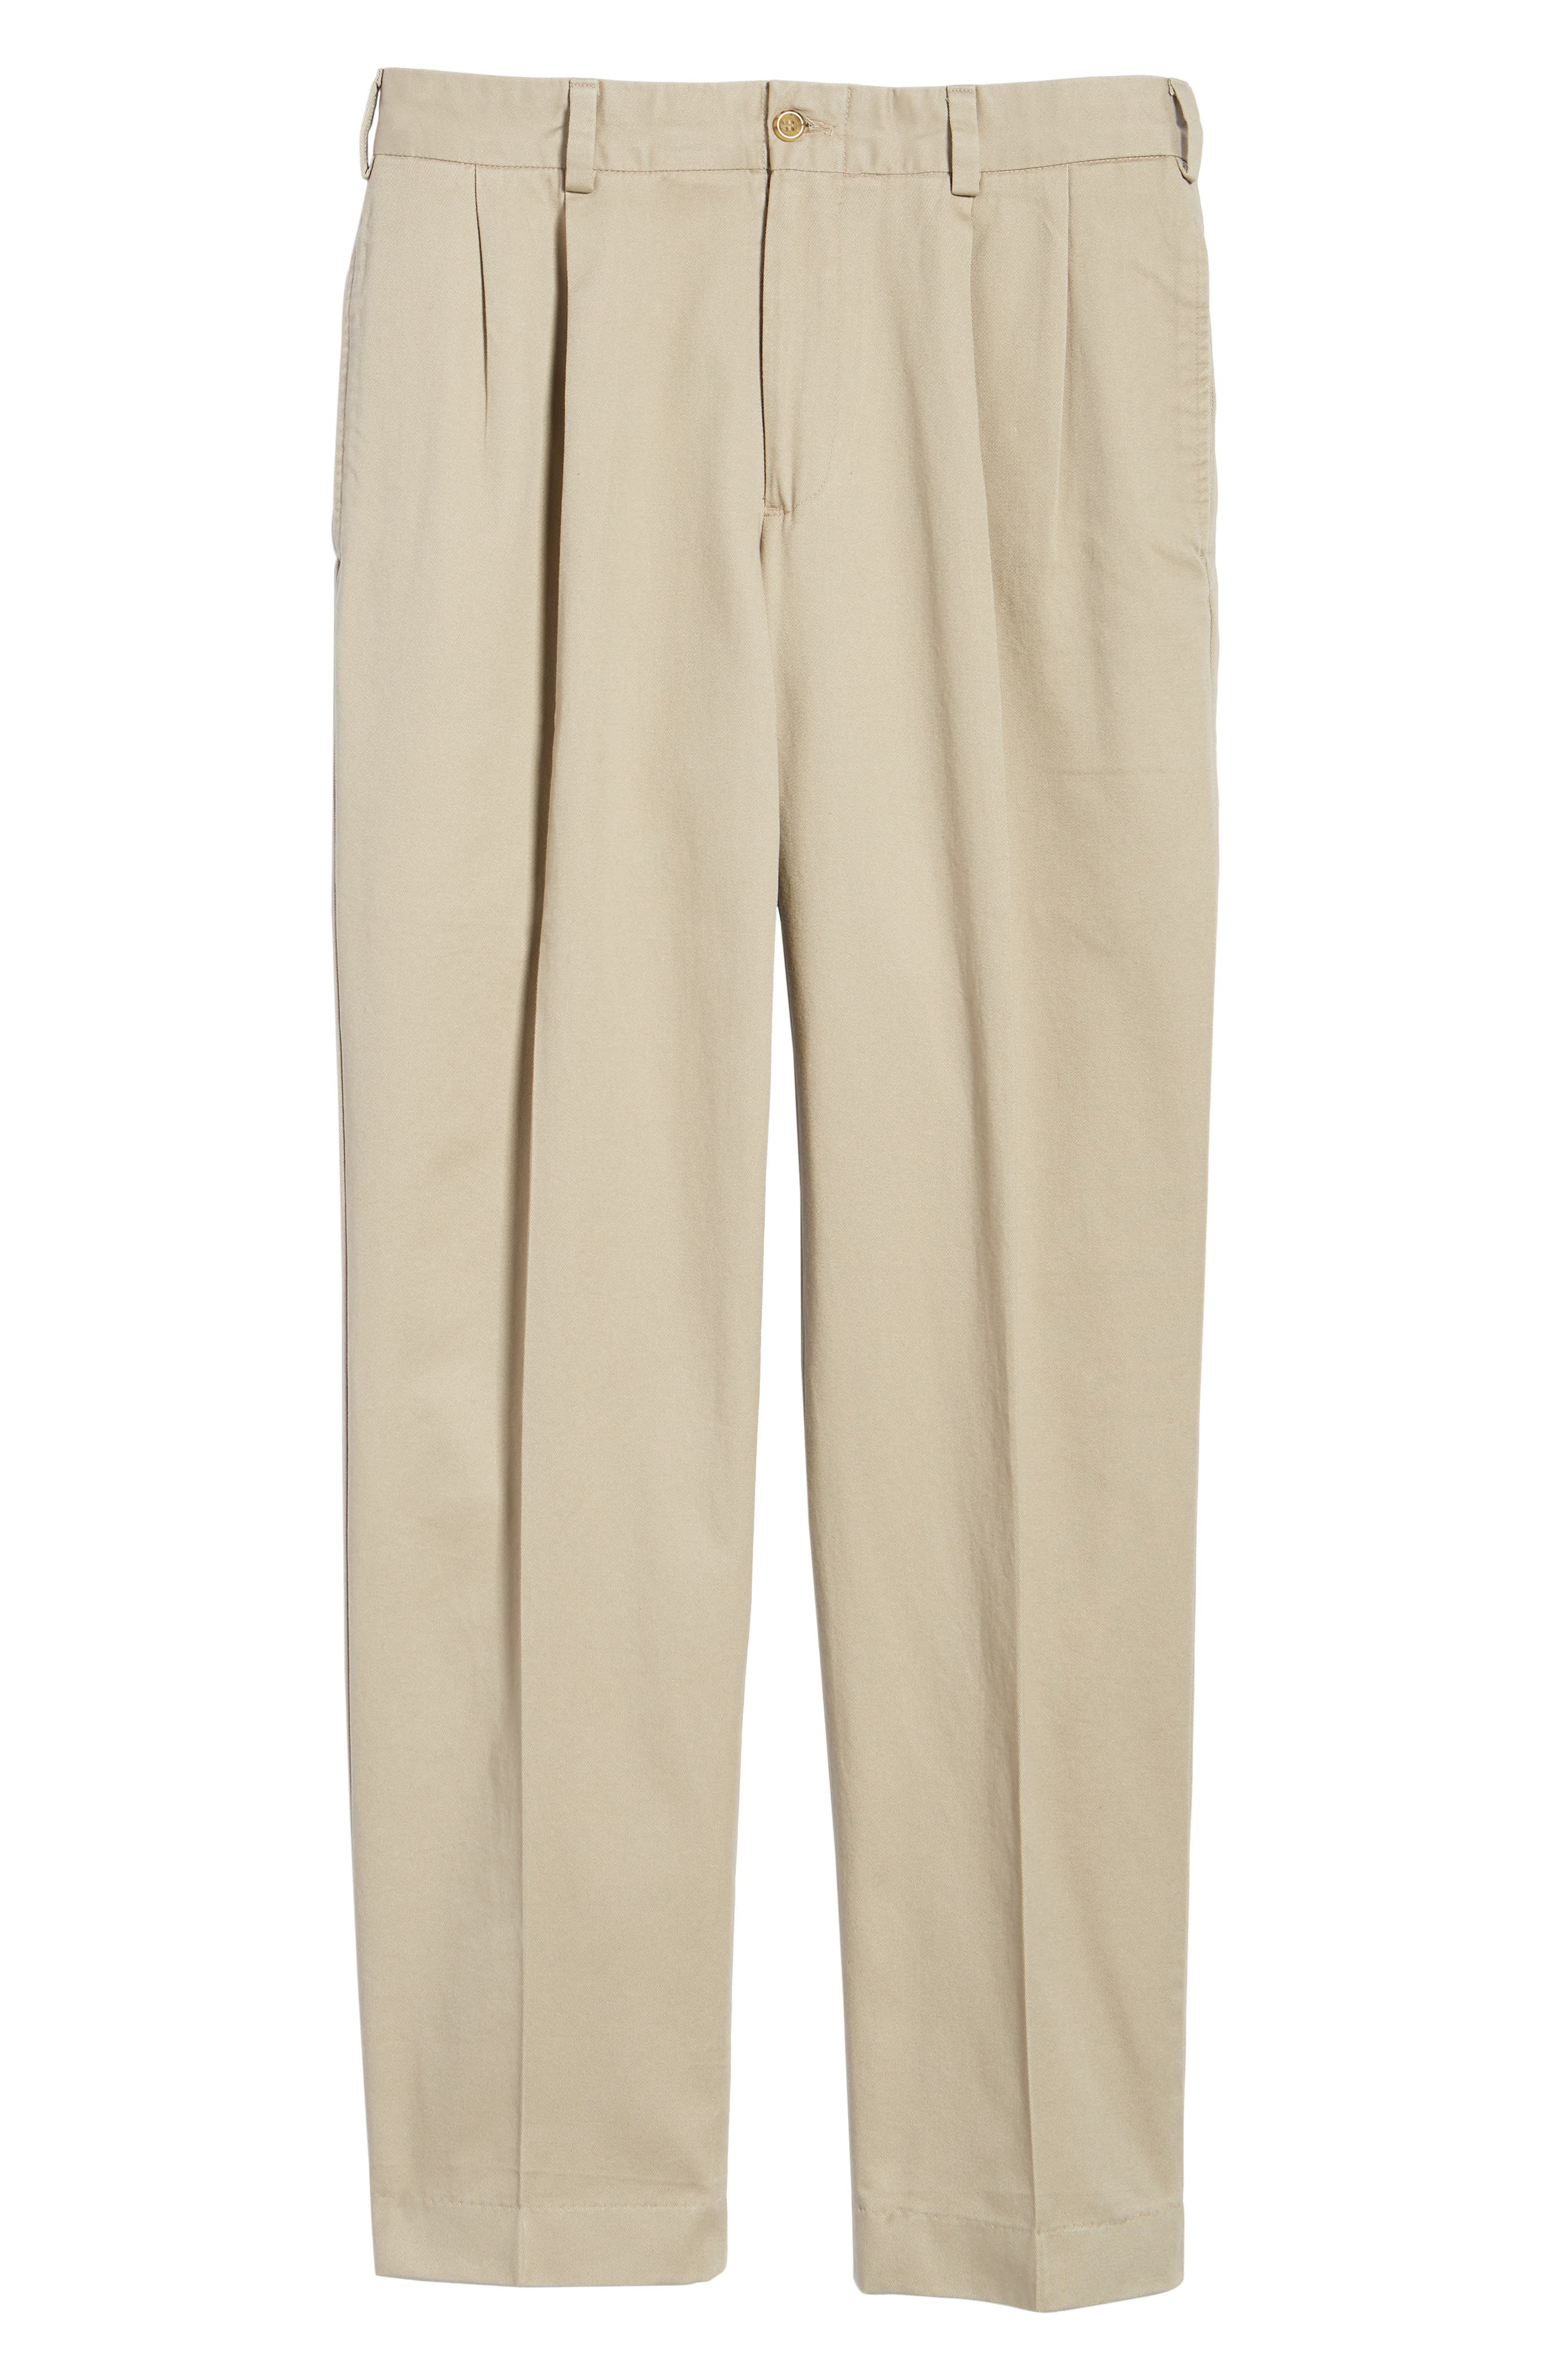 M2 Classic Fit Pleated Vintage Twill Pants,                             Alternate thumbnail 6, color,                             250